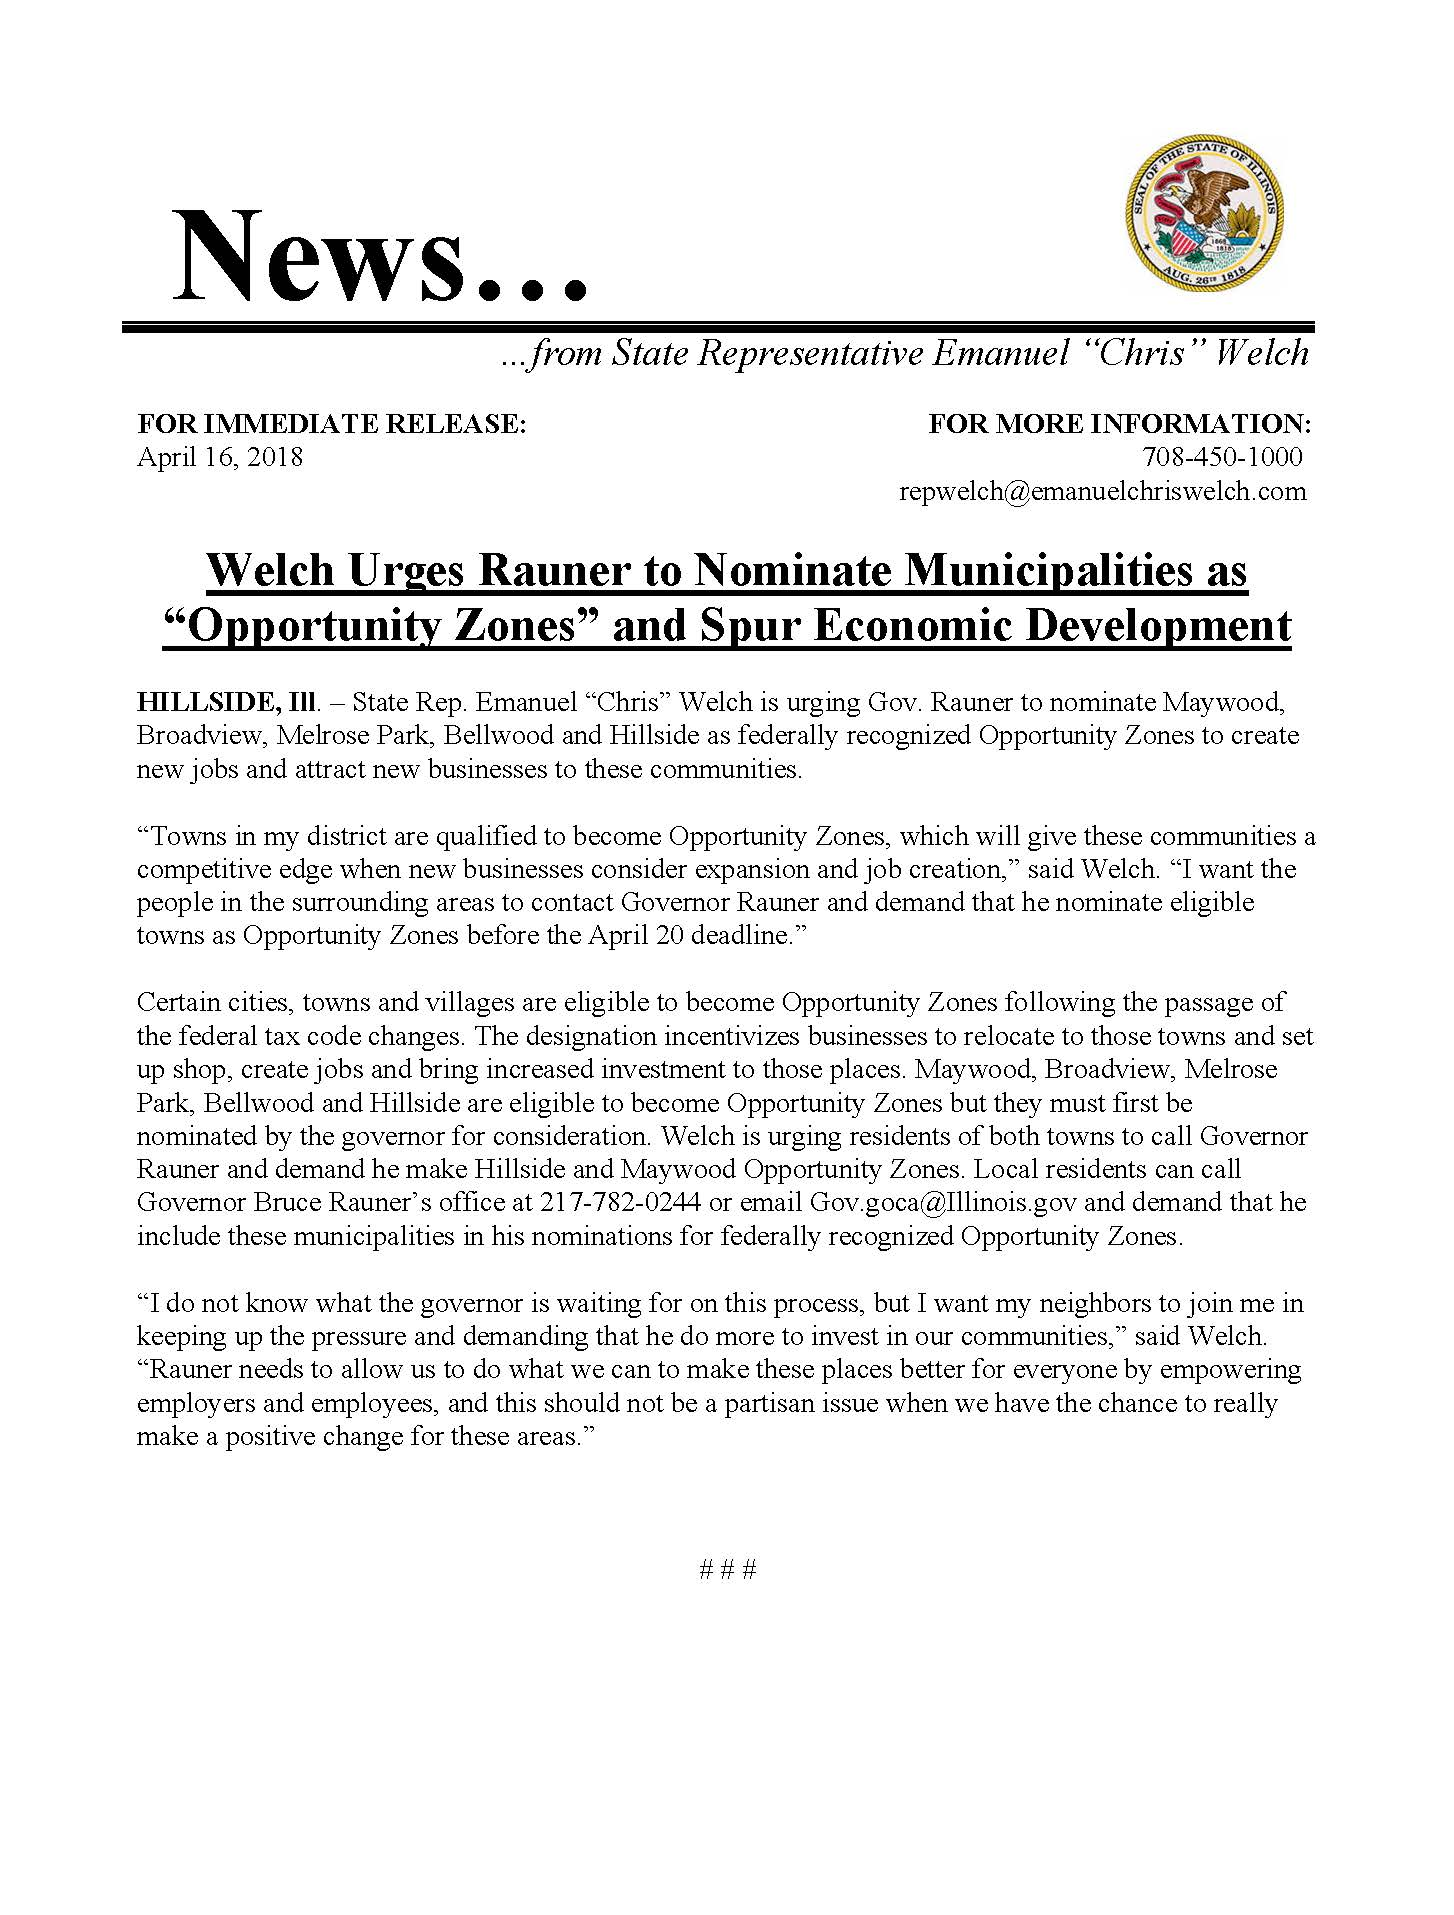 """Welch Urges Rauner to Nominate Municipalities as """"Opportunitiy Zones""""  (April 16, 2018)"""